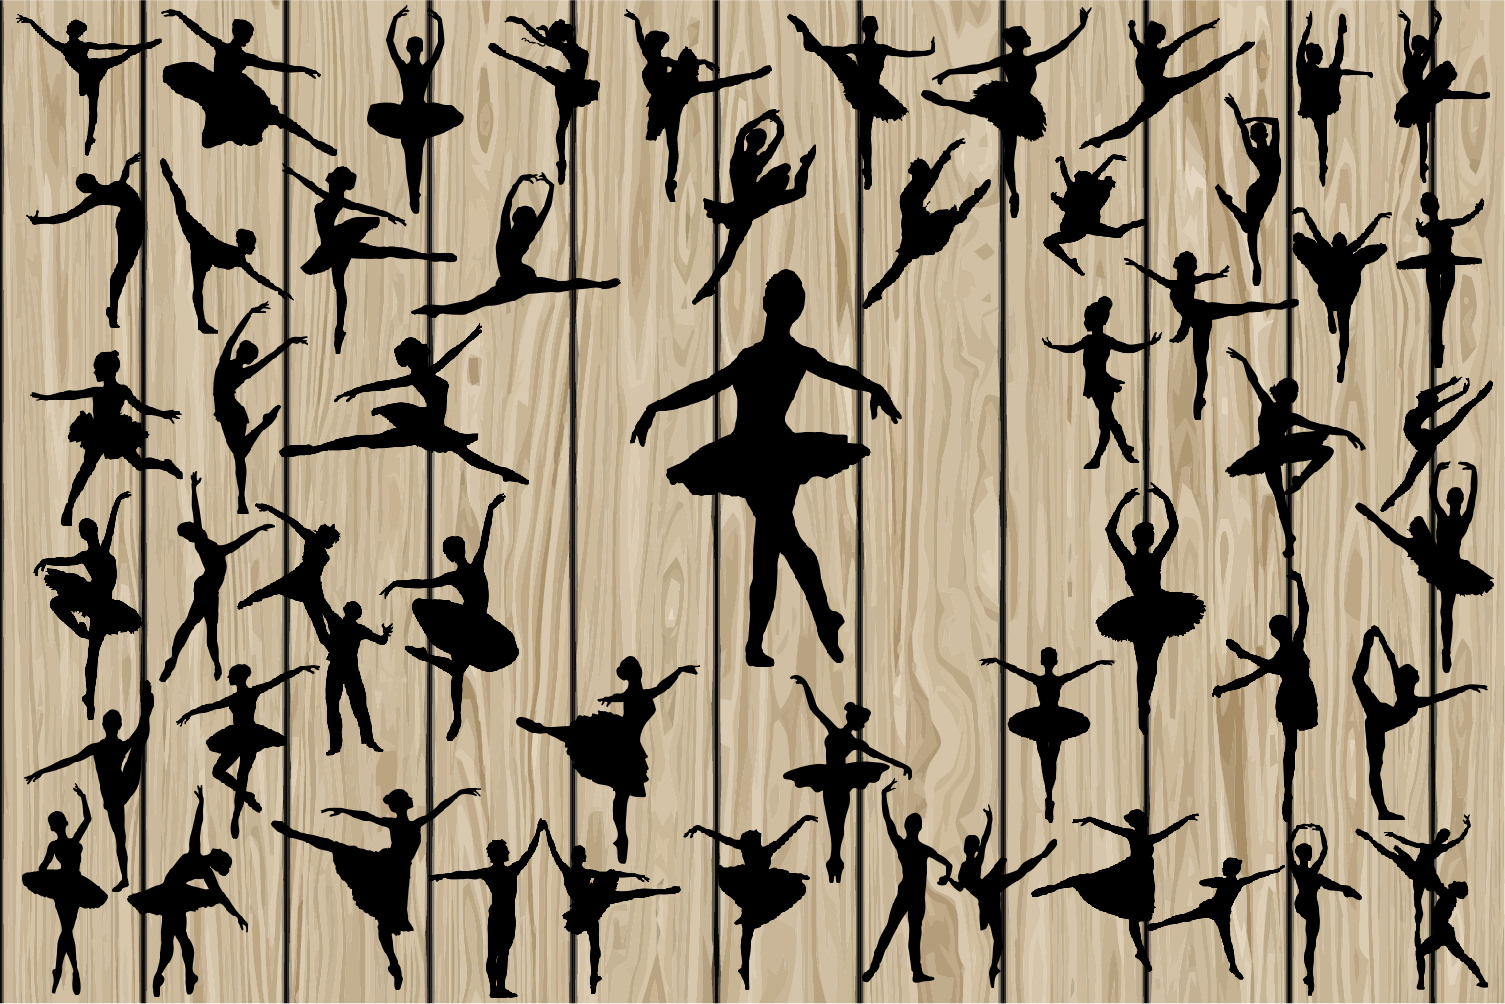 Download Free 50 Ballerina Dancers Svg Graphic By Cosmosfineart Creative Fabrica for Cricut Explore, Silhouette and other cutting machines.